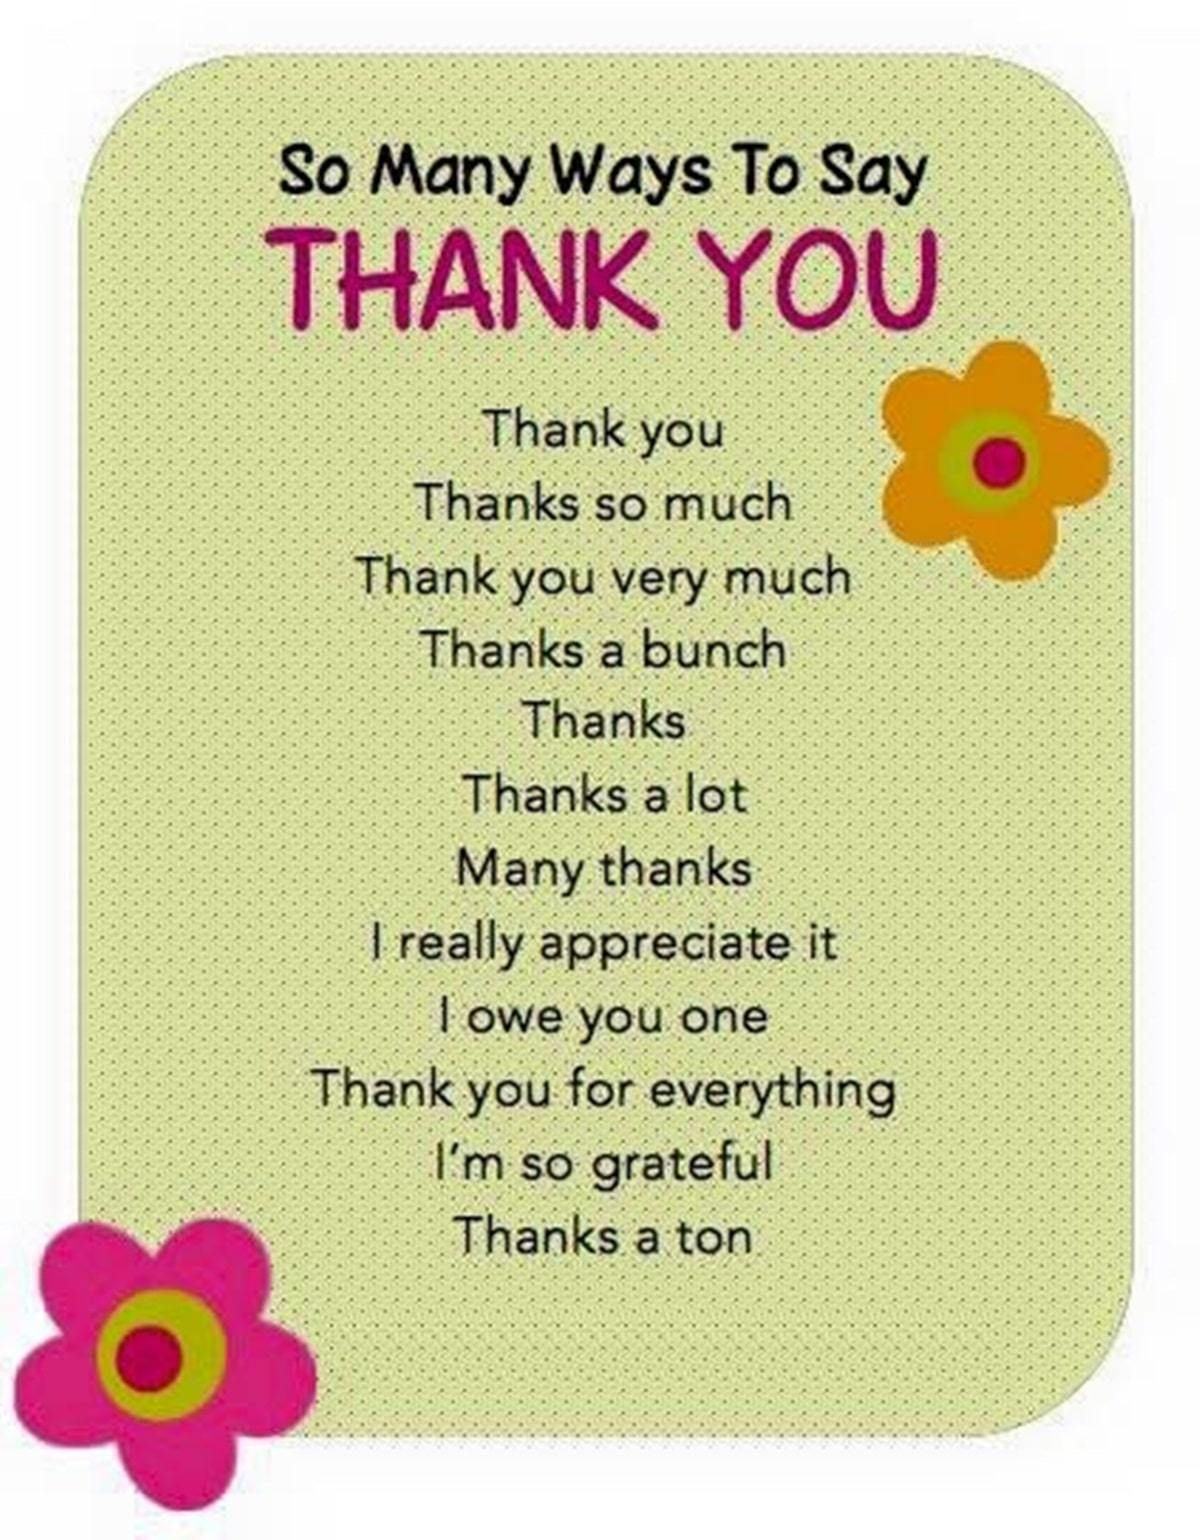 30 delightful ways to say thank you in english english 30 delightful ways to say thank you in english stopboris Choice Image